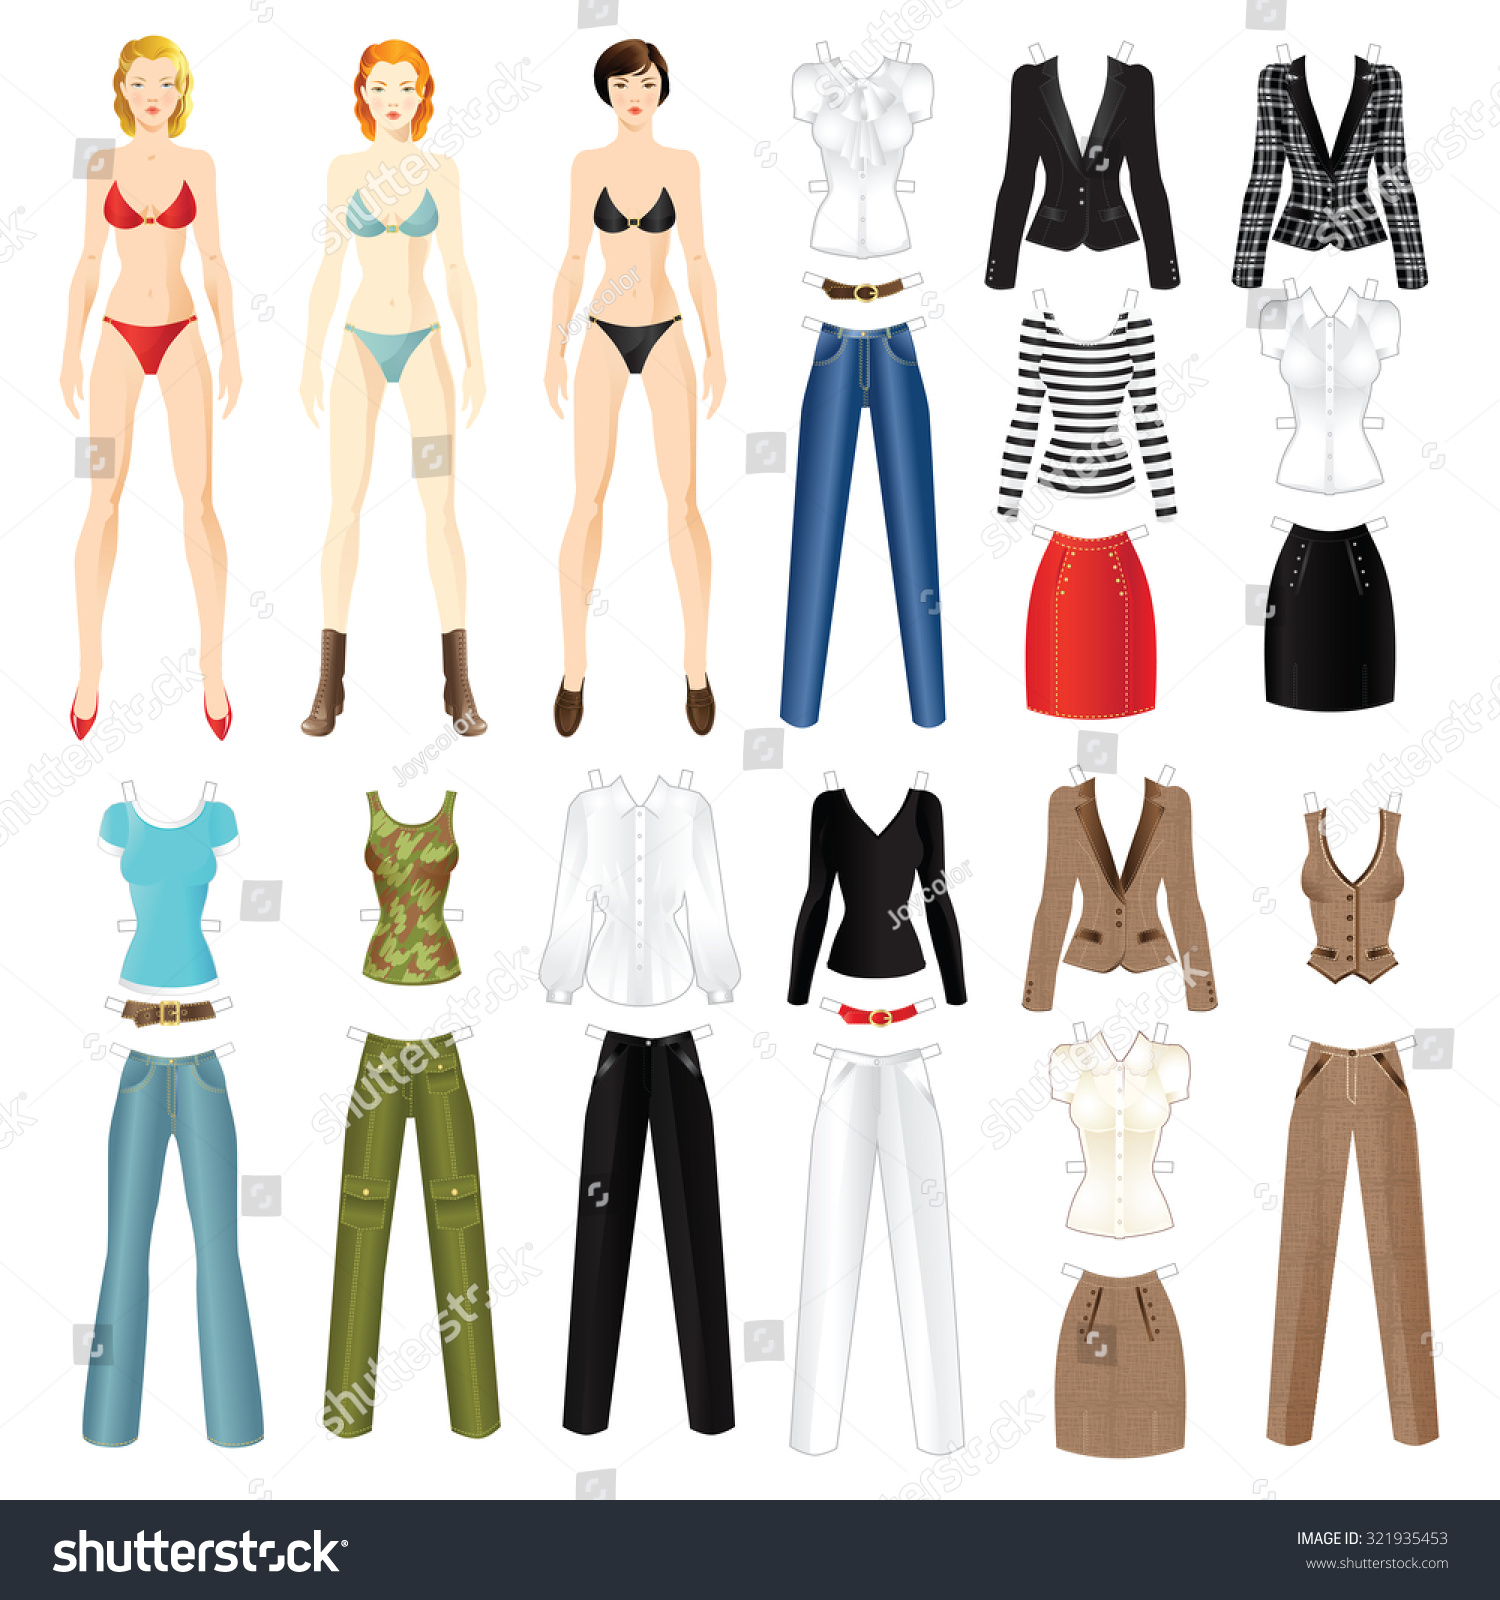 paper doll clothes office holiday body stock vector  paper doll clothes for office and holiday body template